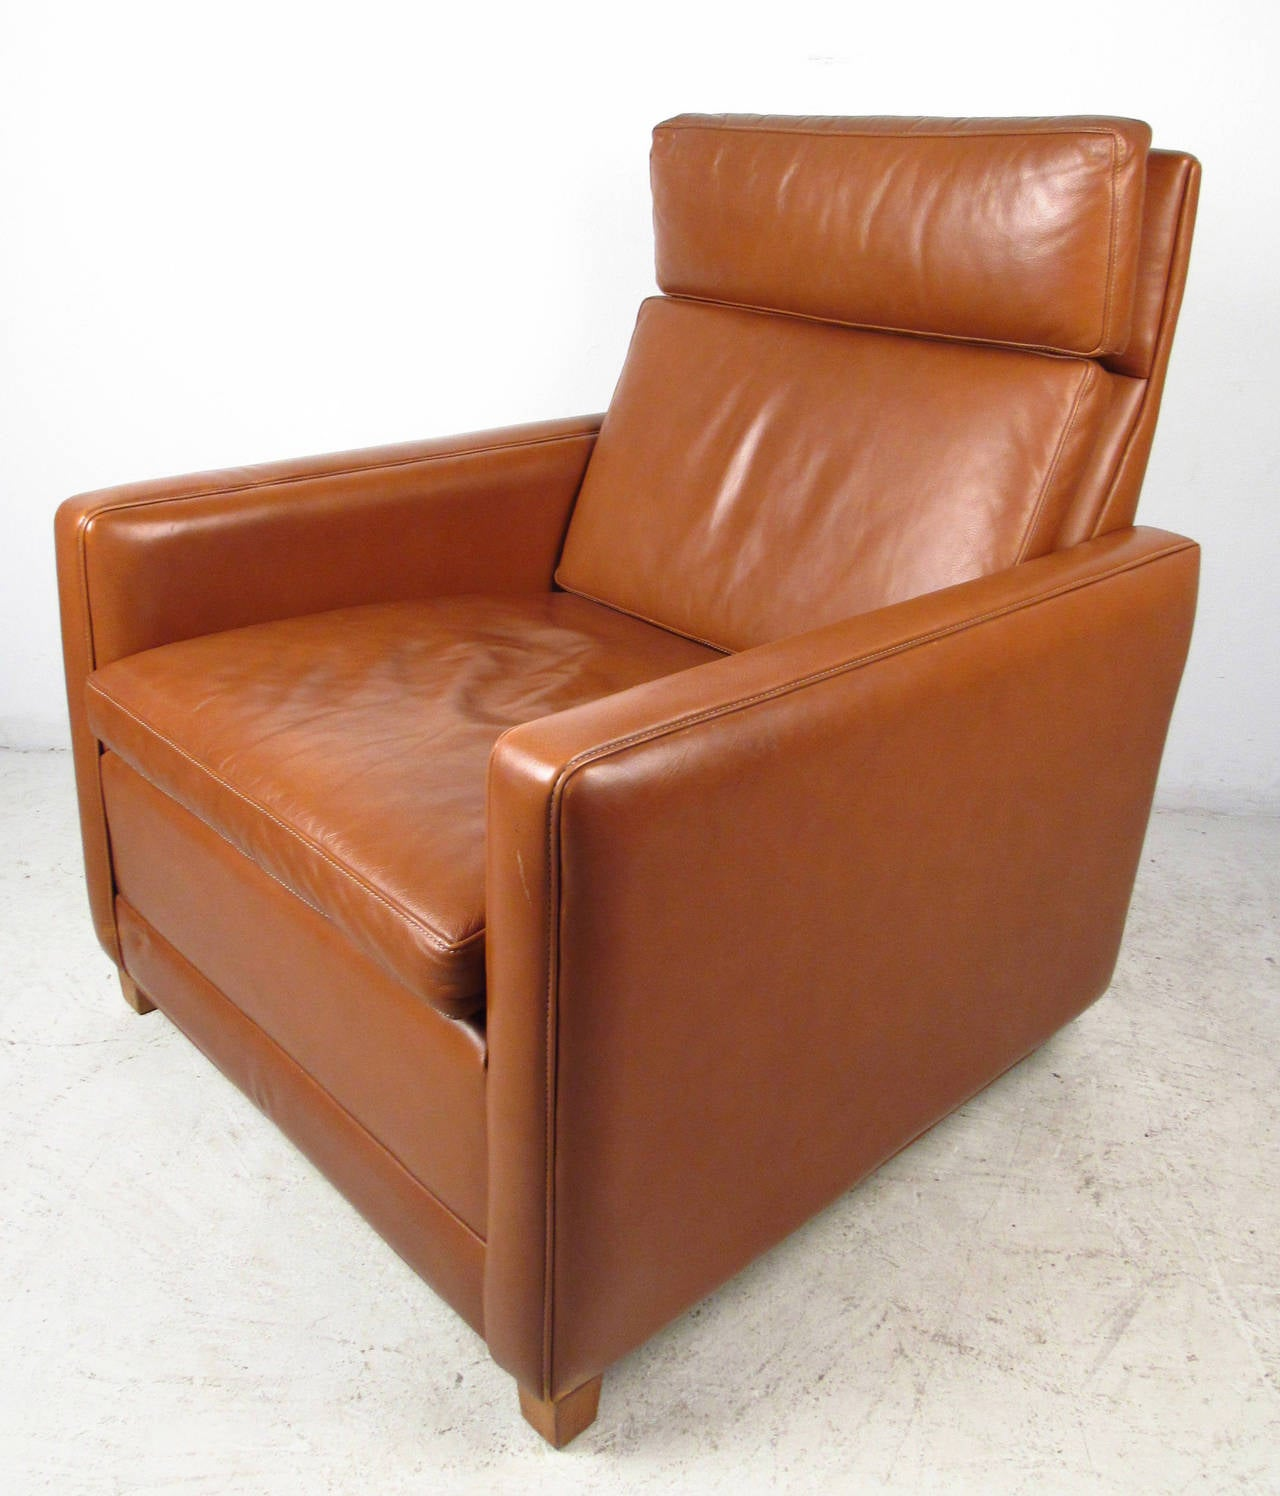 Vintage modern leather lounge chair features a unique design with blonde wood feet in the front and chrome wheels in the back, designed by Børge Mogensen. This unique shape with it's ergonomic seat back makes a comfortable chair for home or business